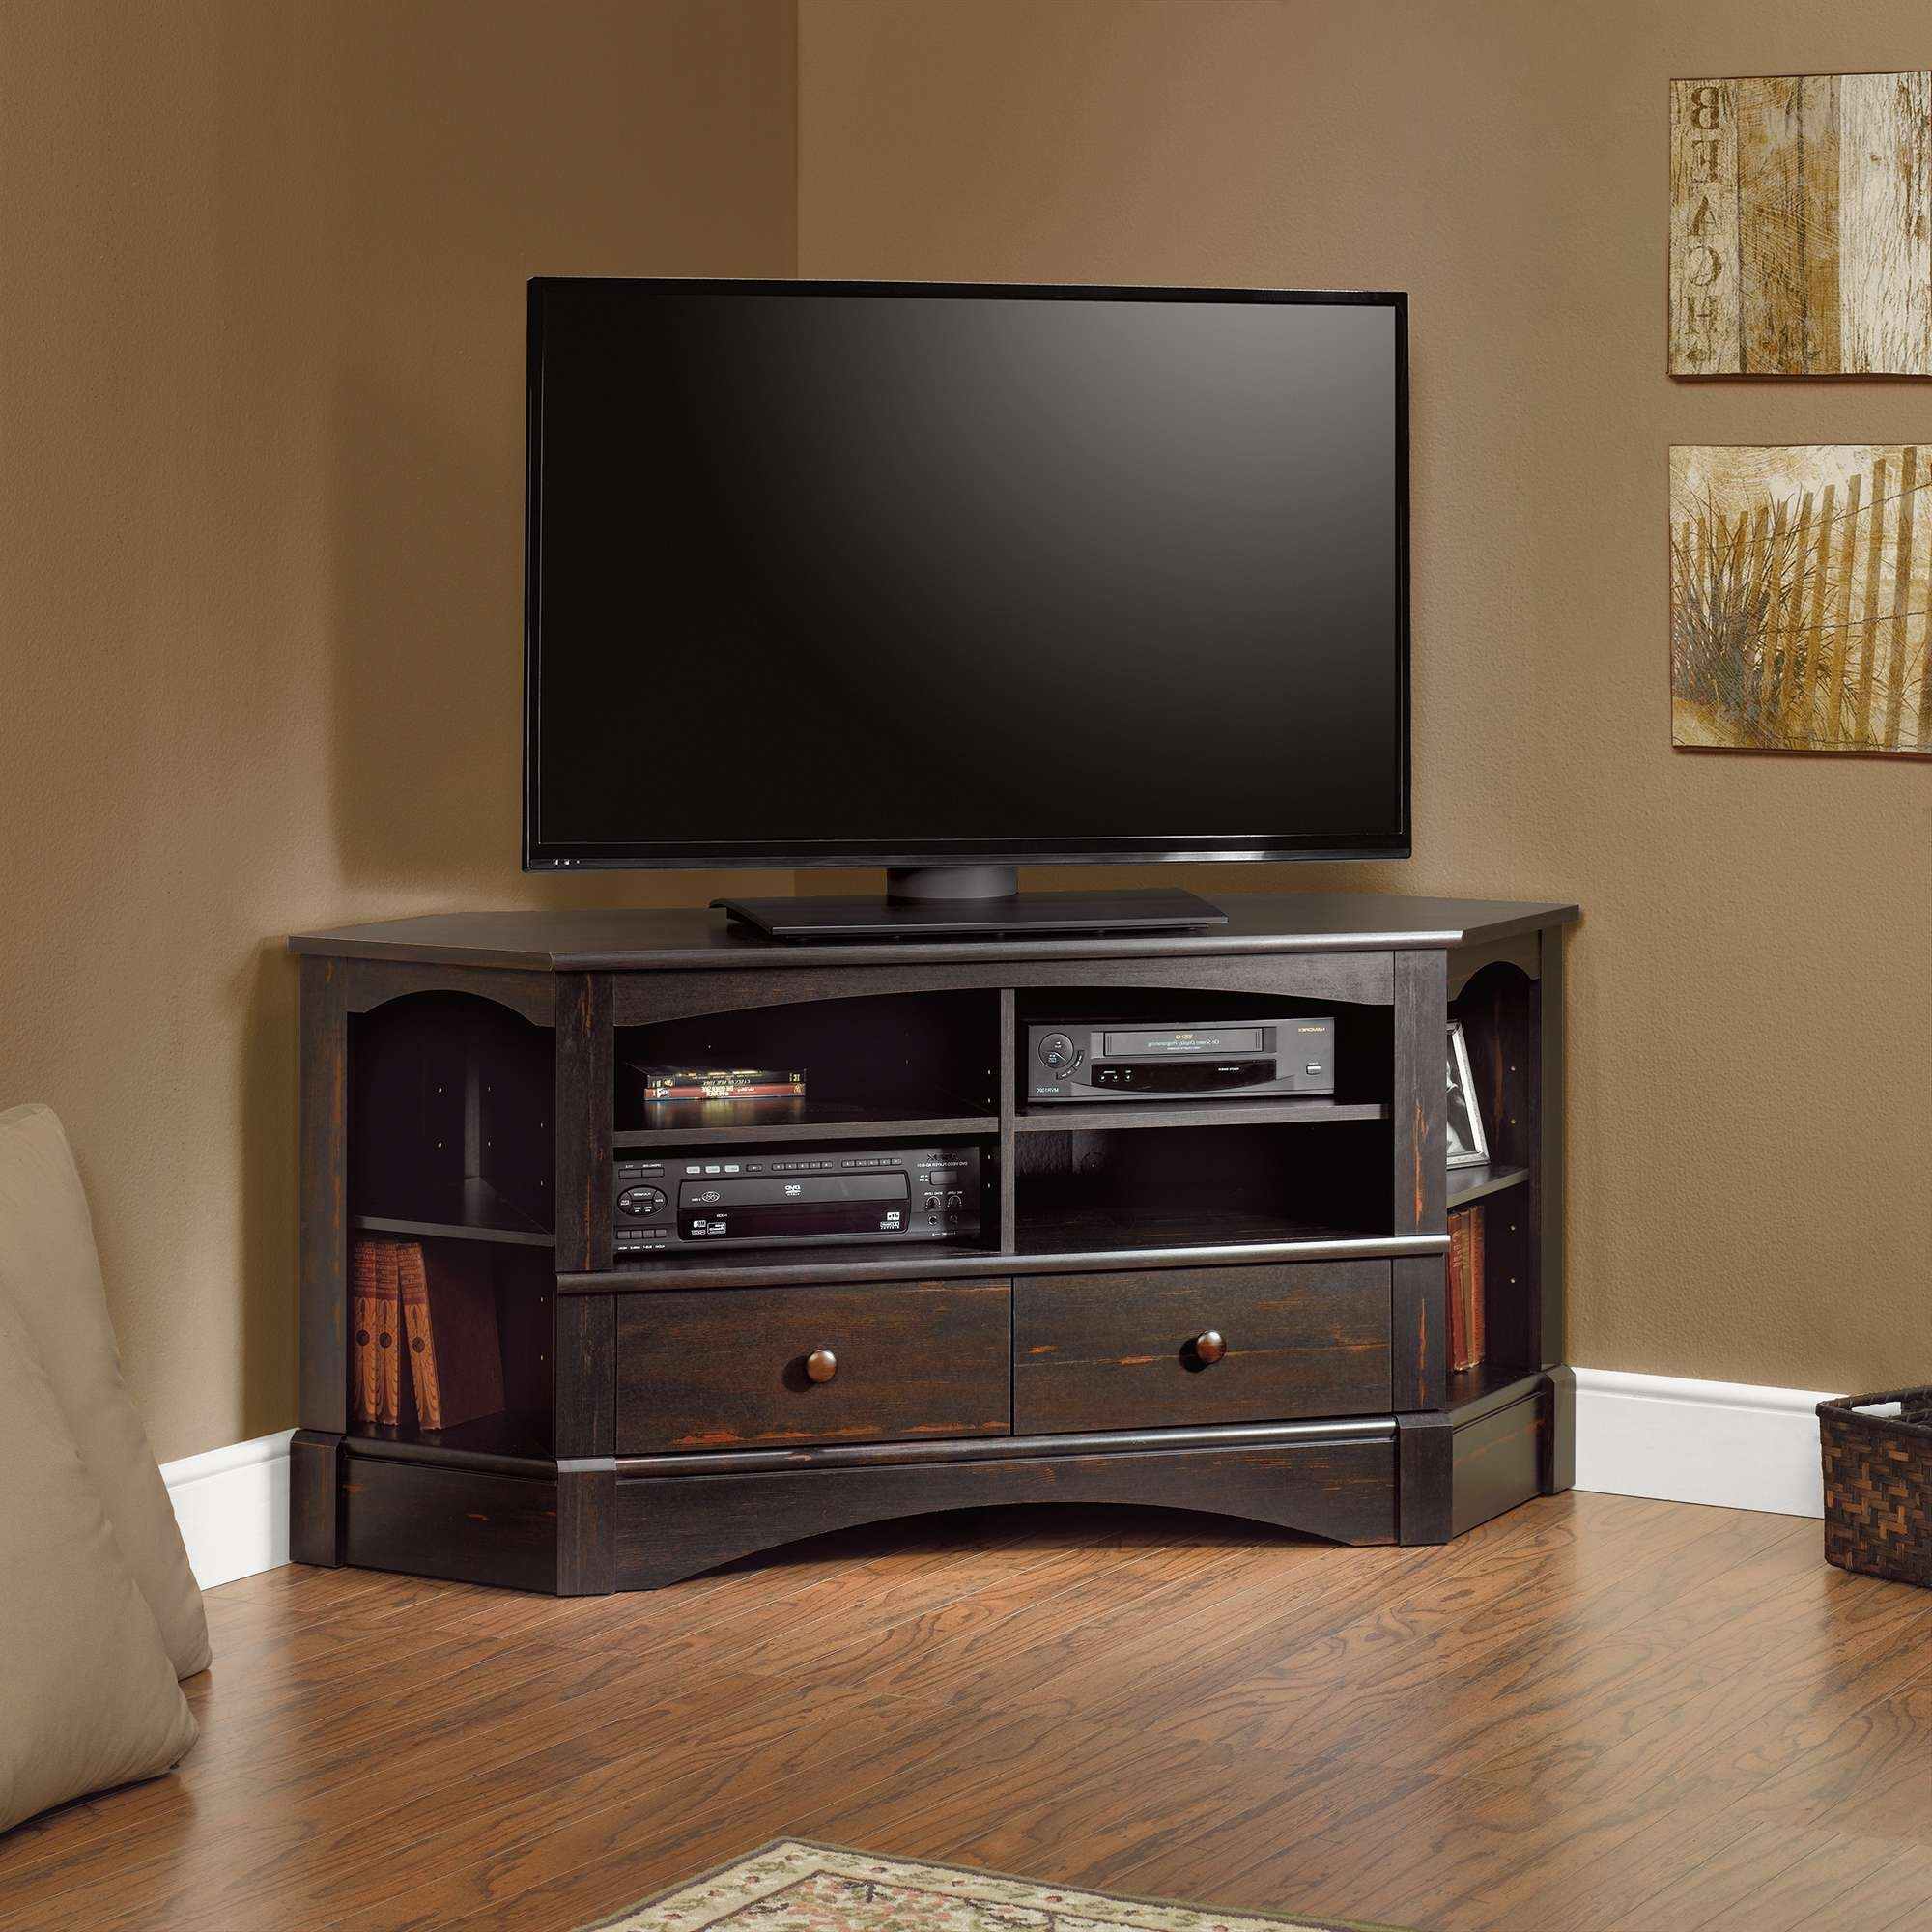 Tall Tv Stands For Bedroom 2017 Including Stand Images Light Brown Intended For Light Brown Tv Stands (View 18 of 20)